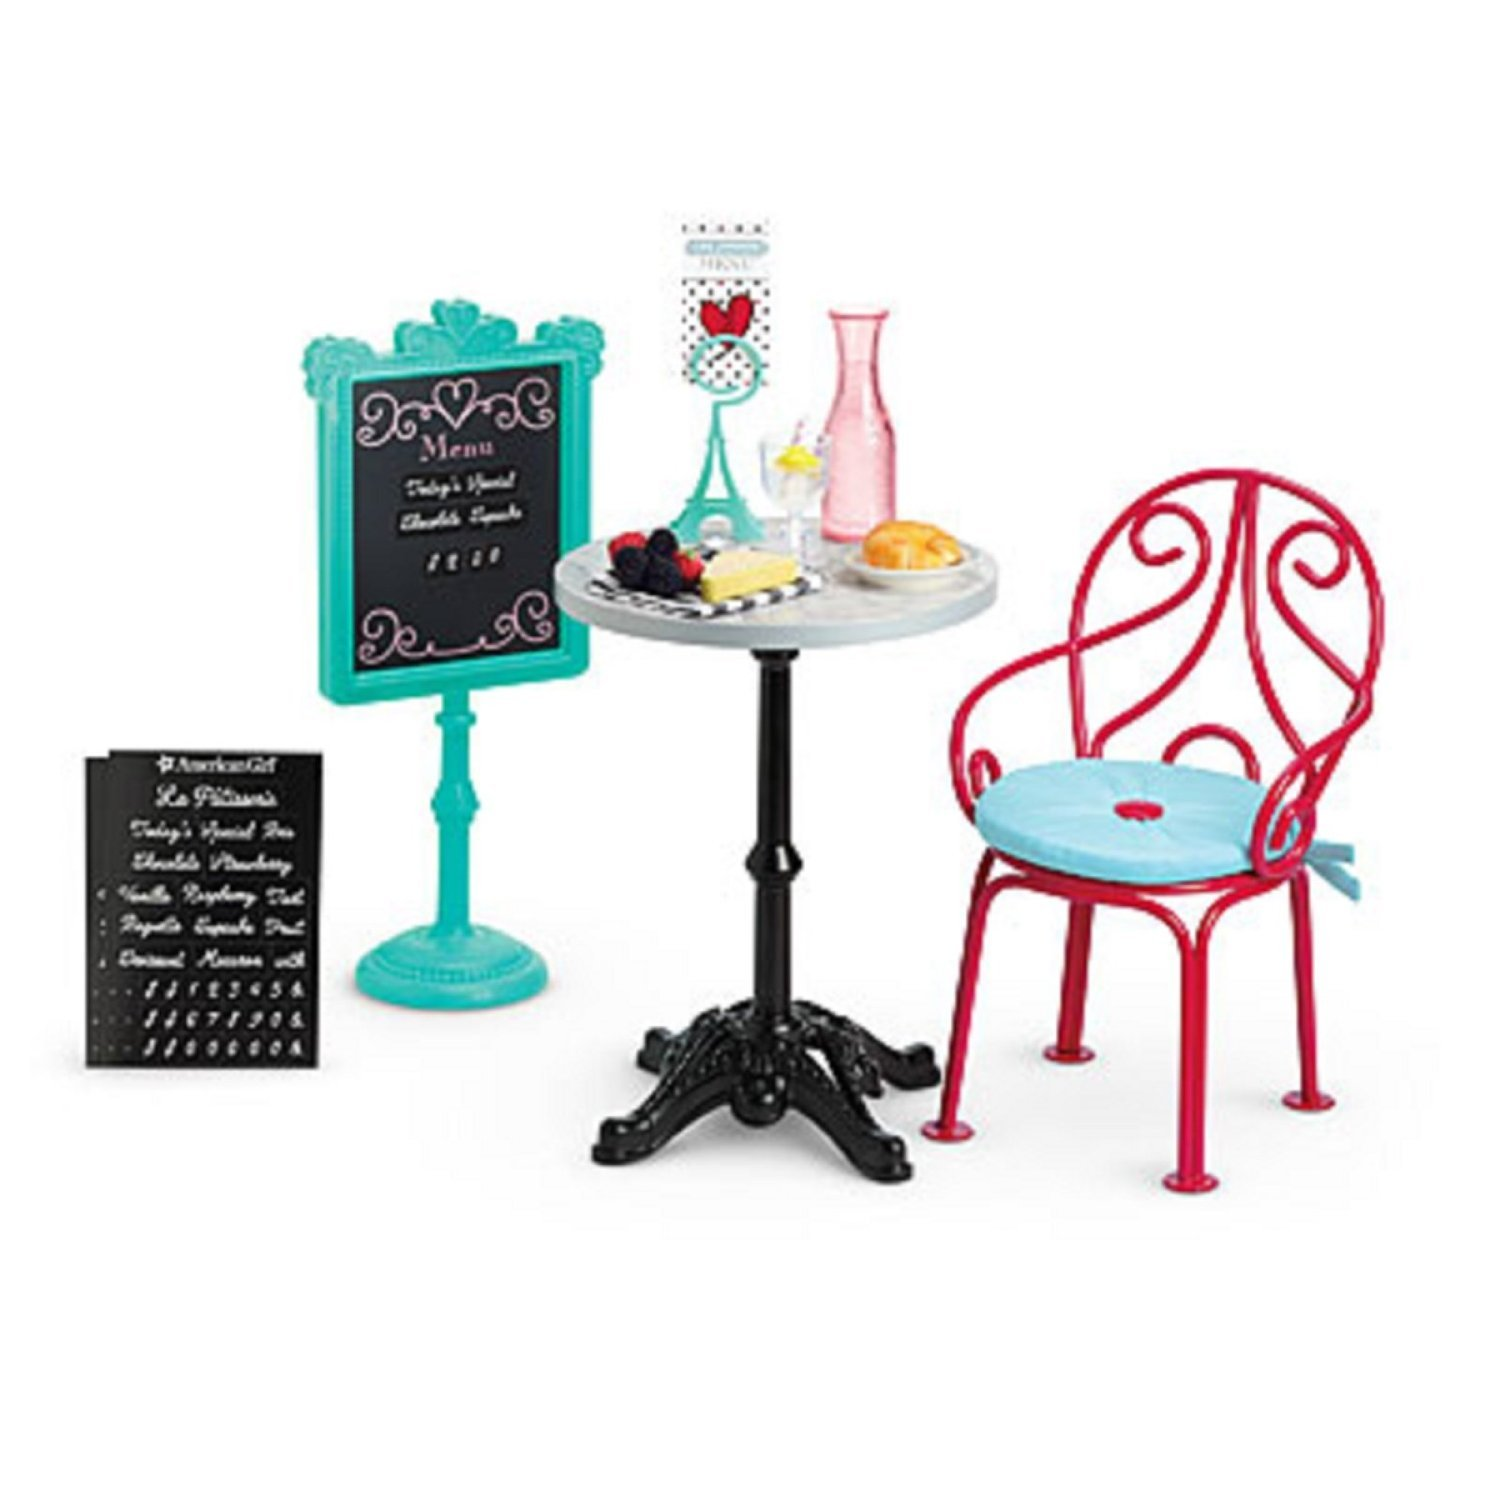 American Girl Grace - Grace's Bistro Set for Dolls - American Girl of 2015